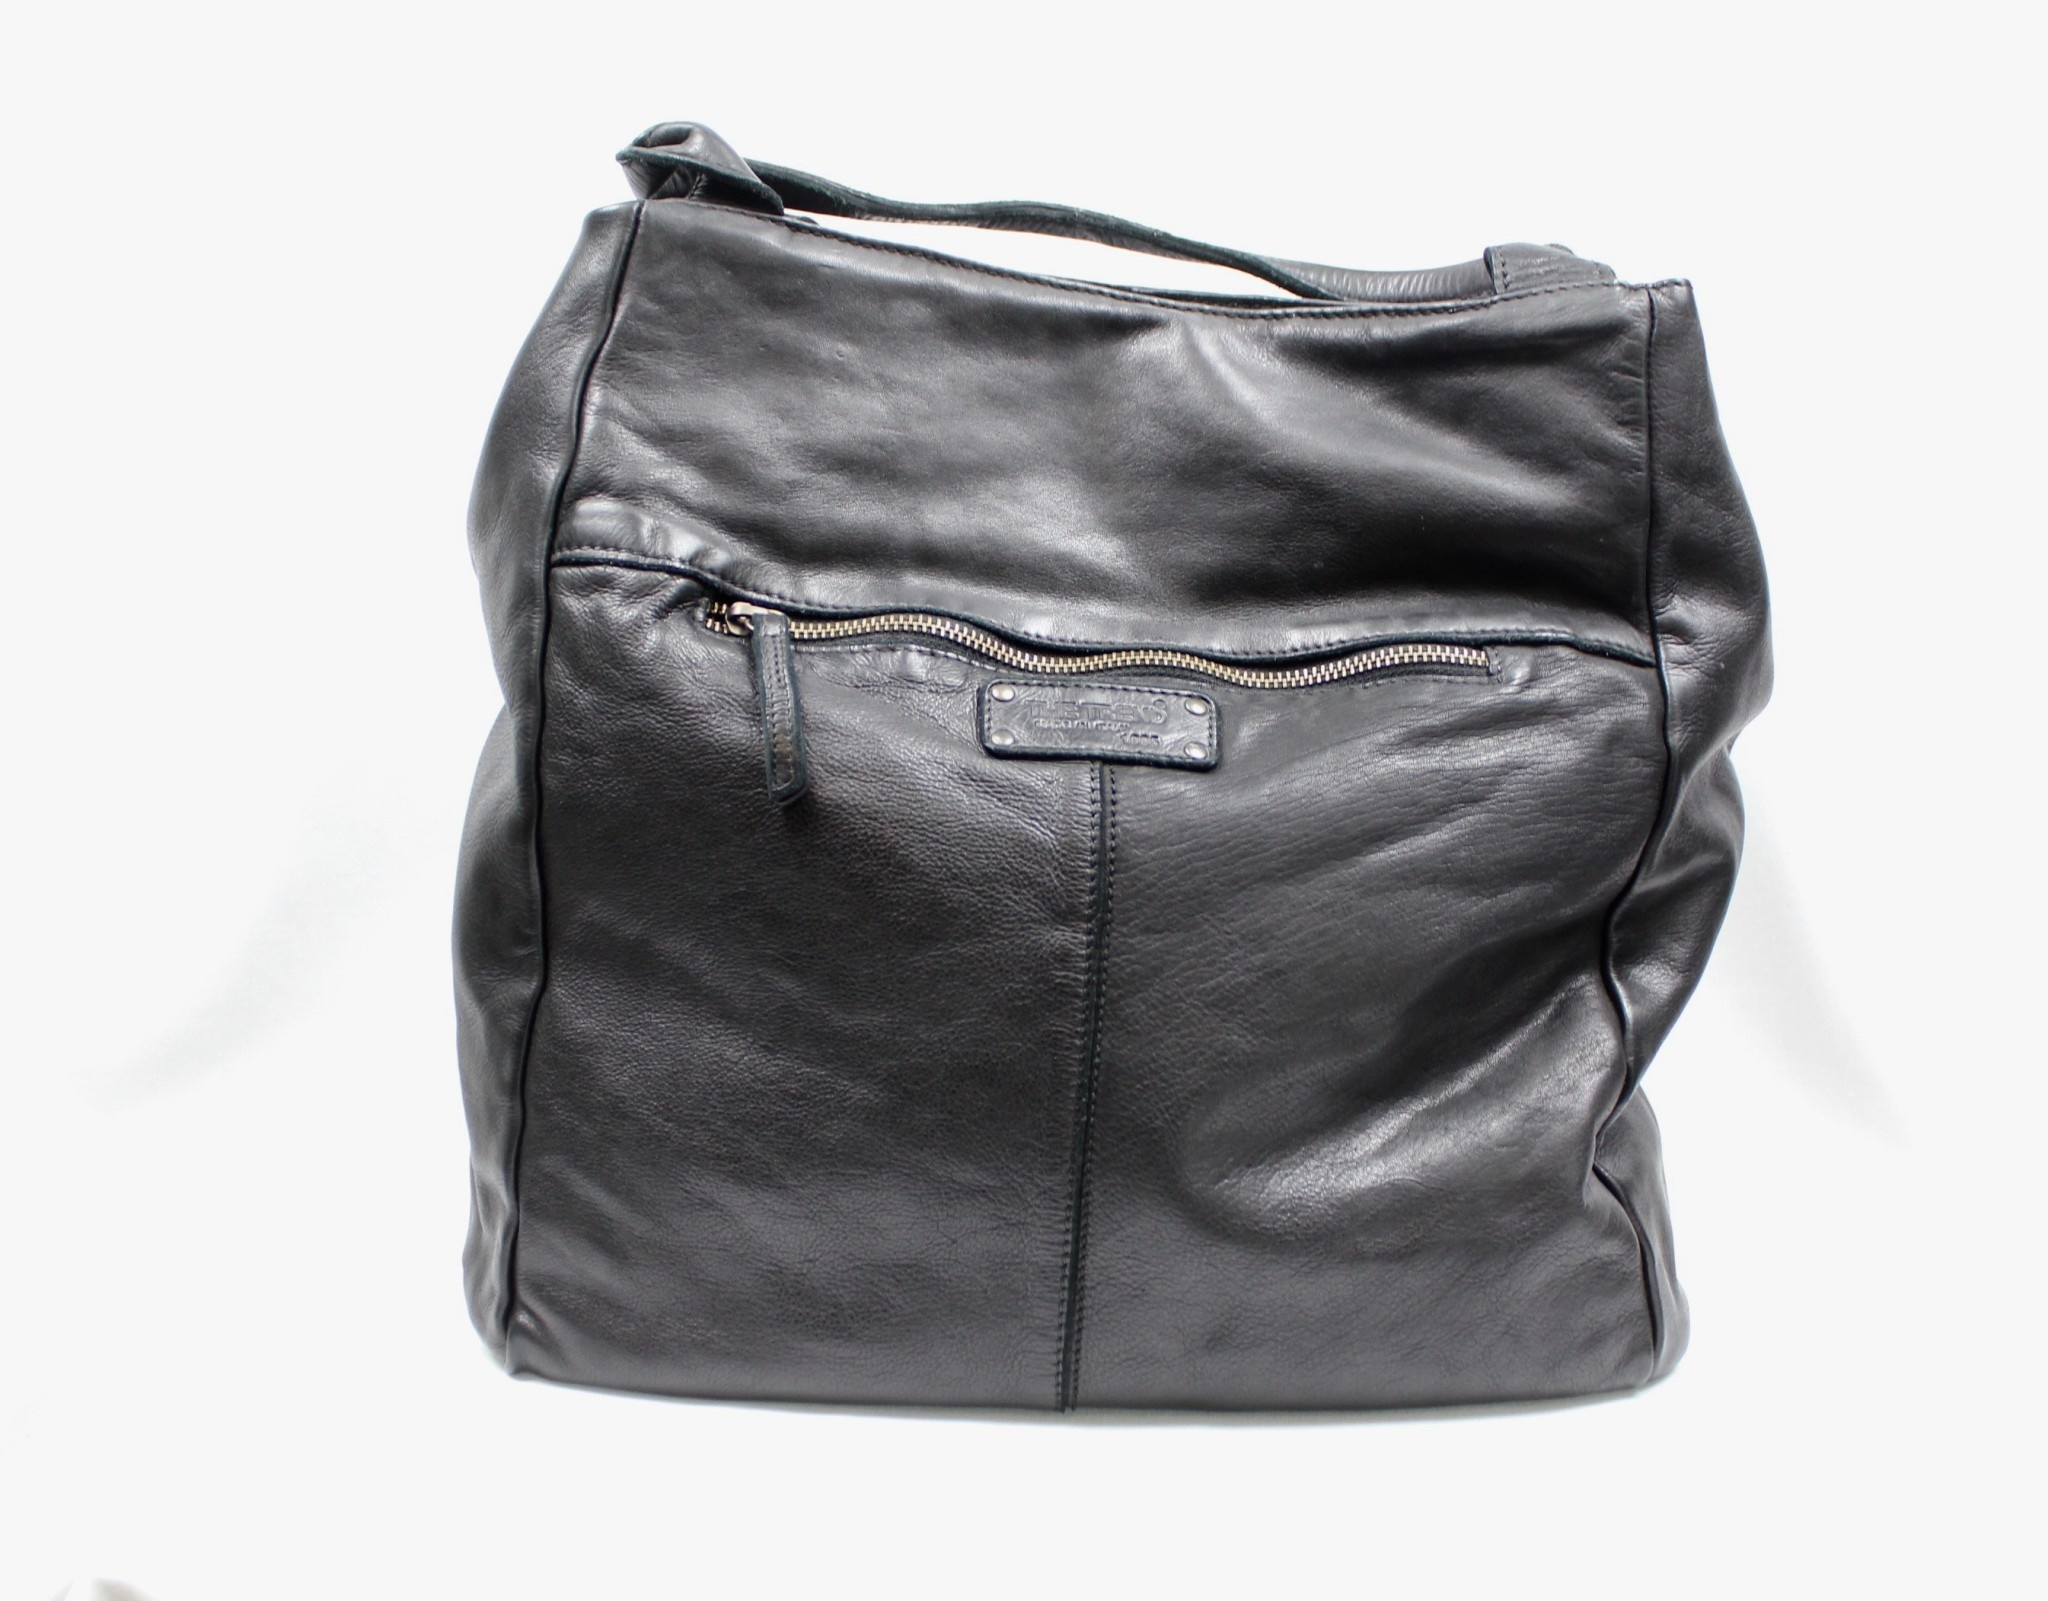 THE TREND THE TREND 22333 Black Leather Carry All Handbag